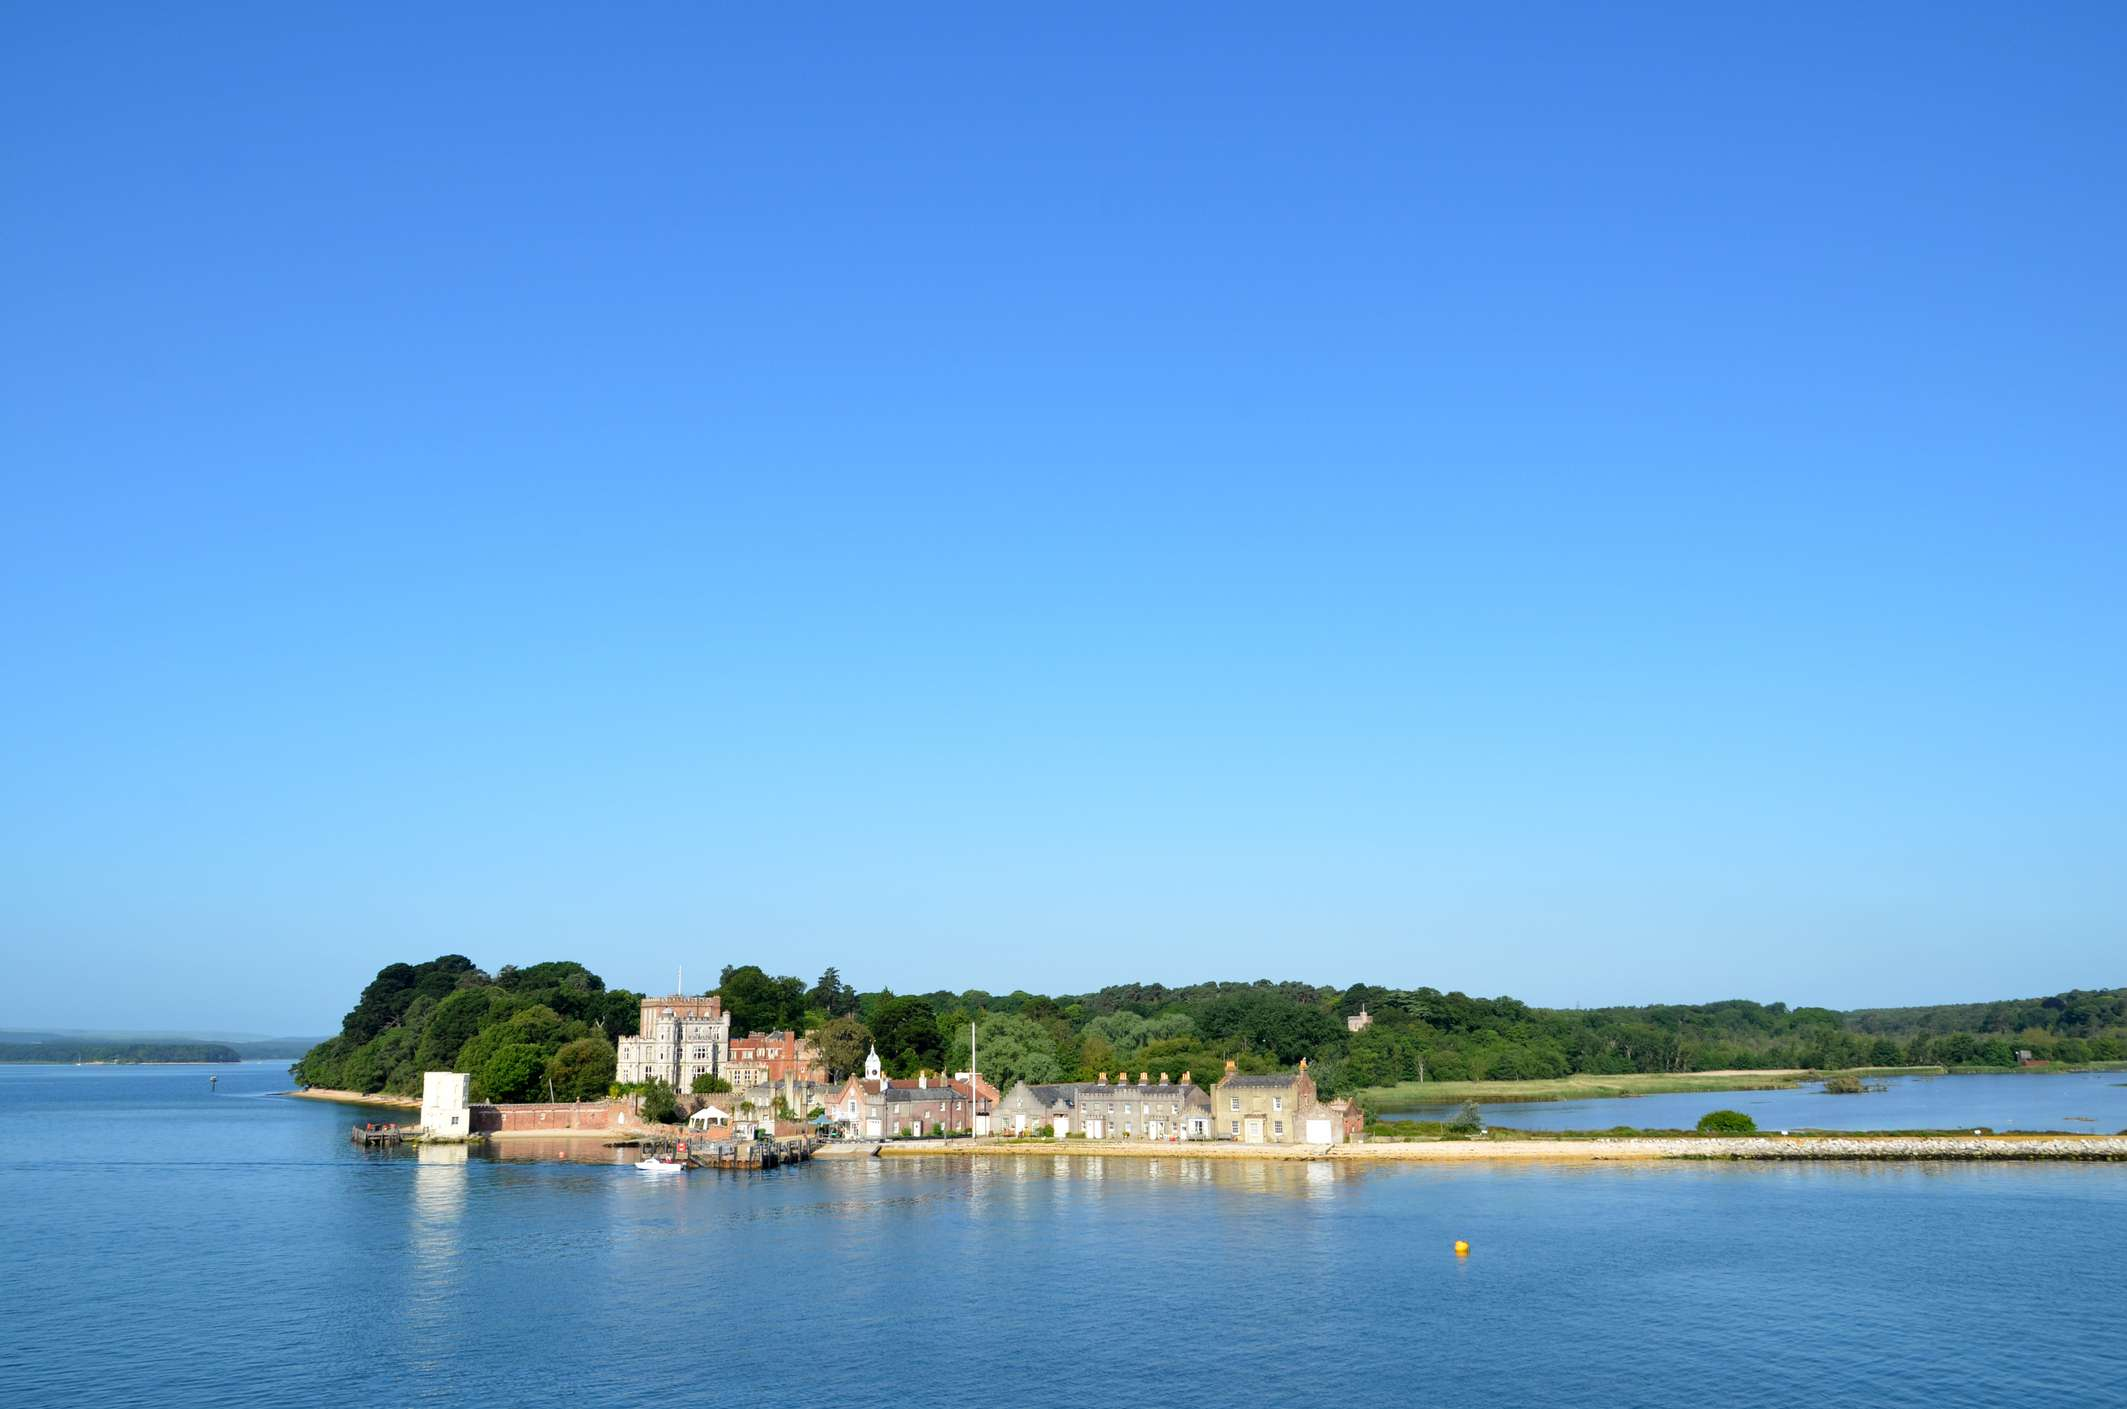 Distant view of buildings and trees onBrownsea Island